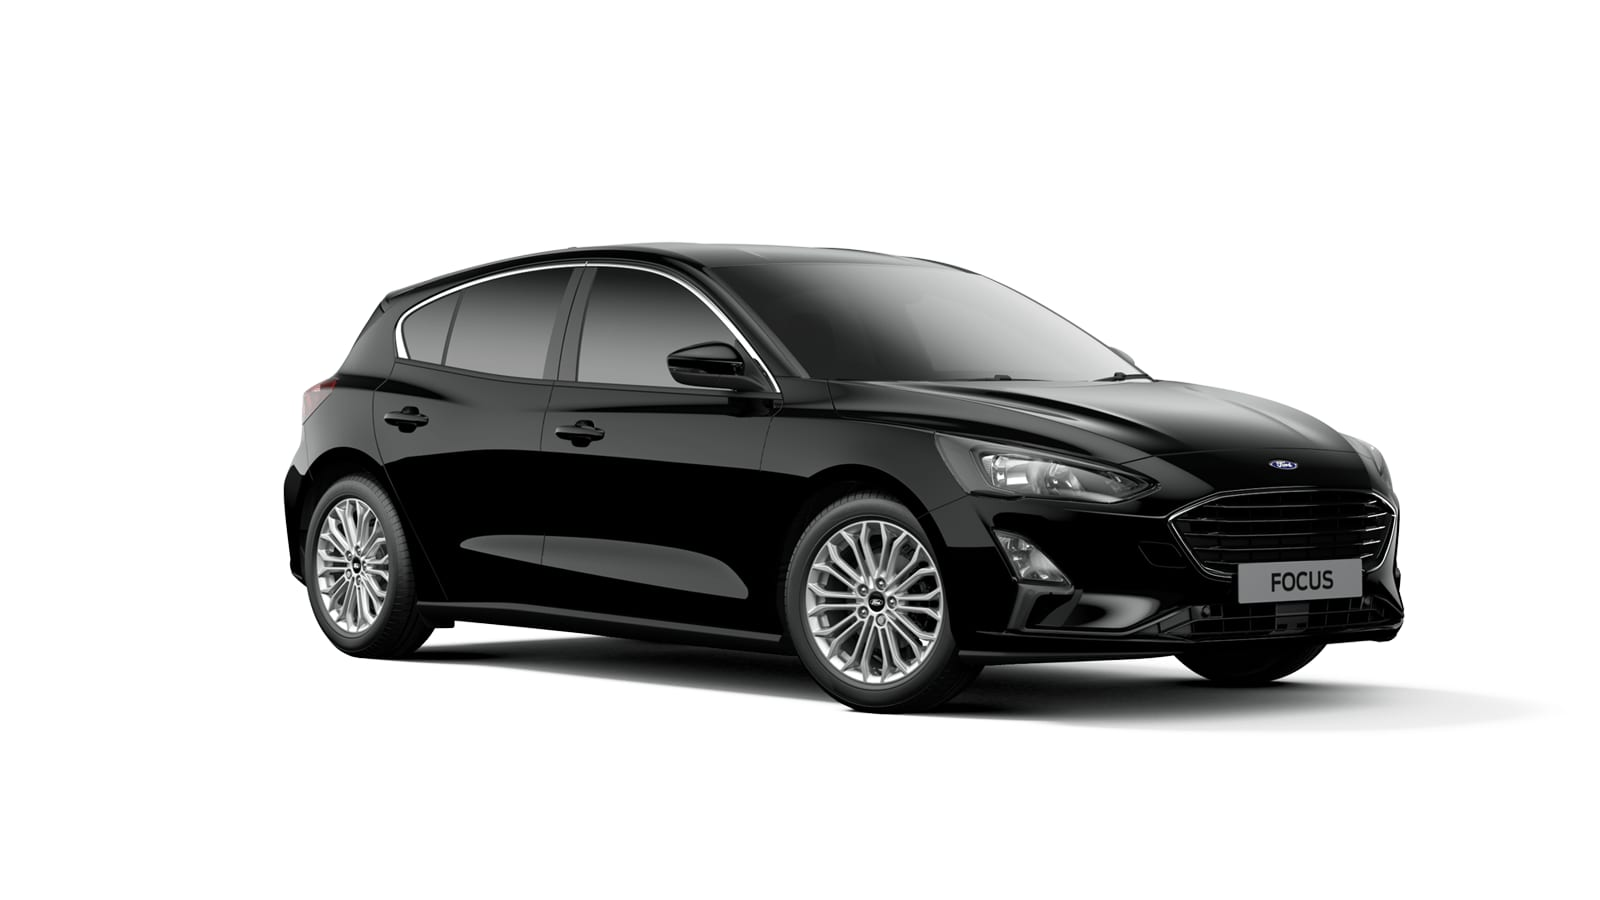 https://www.dealerinternet.co.uk/images/FOCUS%20C346/2019.75/5%20Door/TitaniumX/SHADOW-BLACK.png